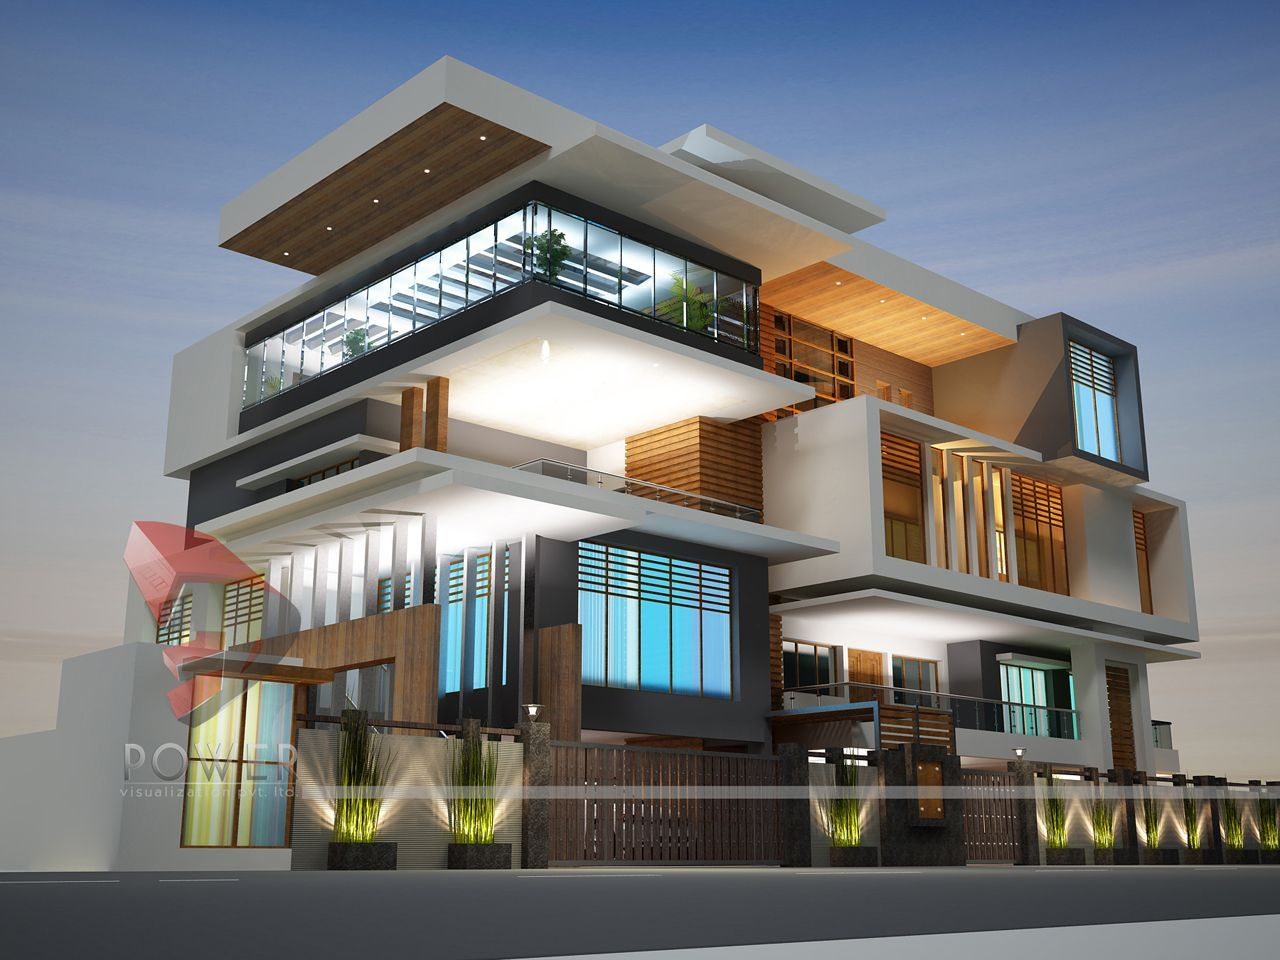 Modern house design in india architecture india modern for Home architecture design india